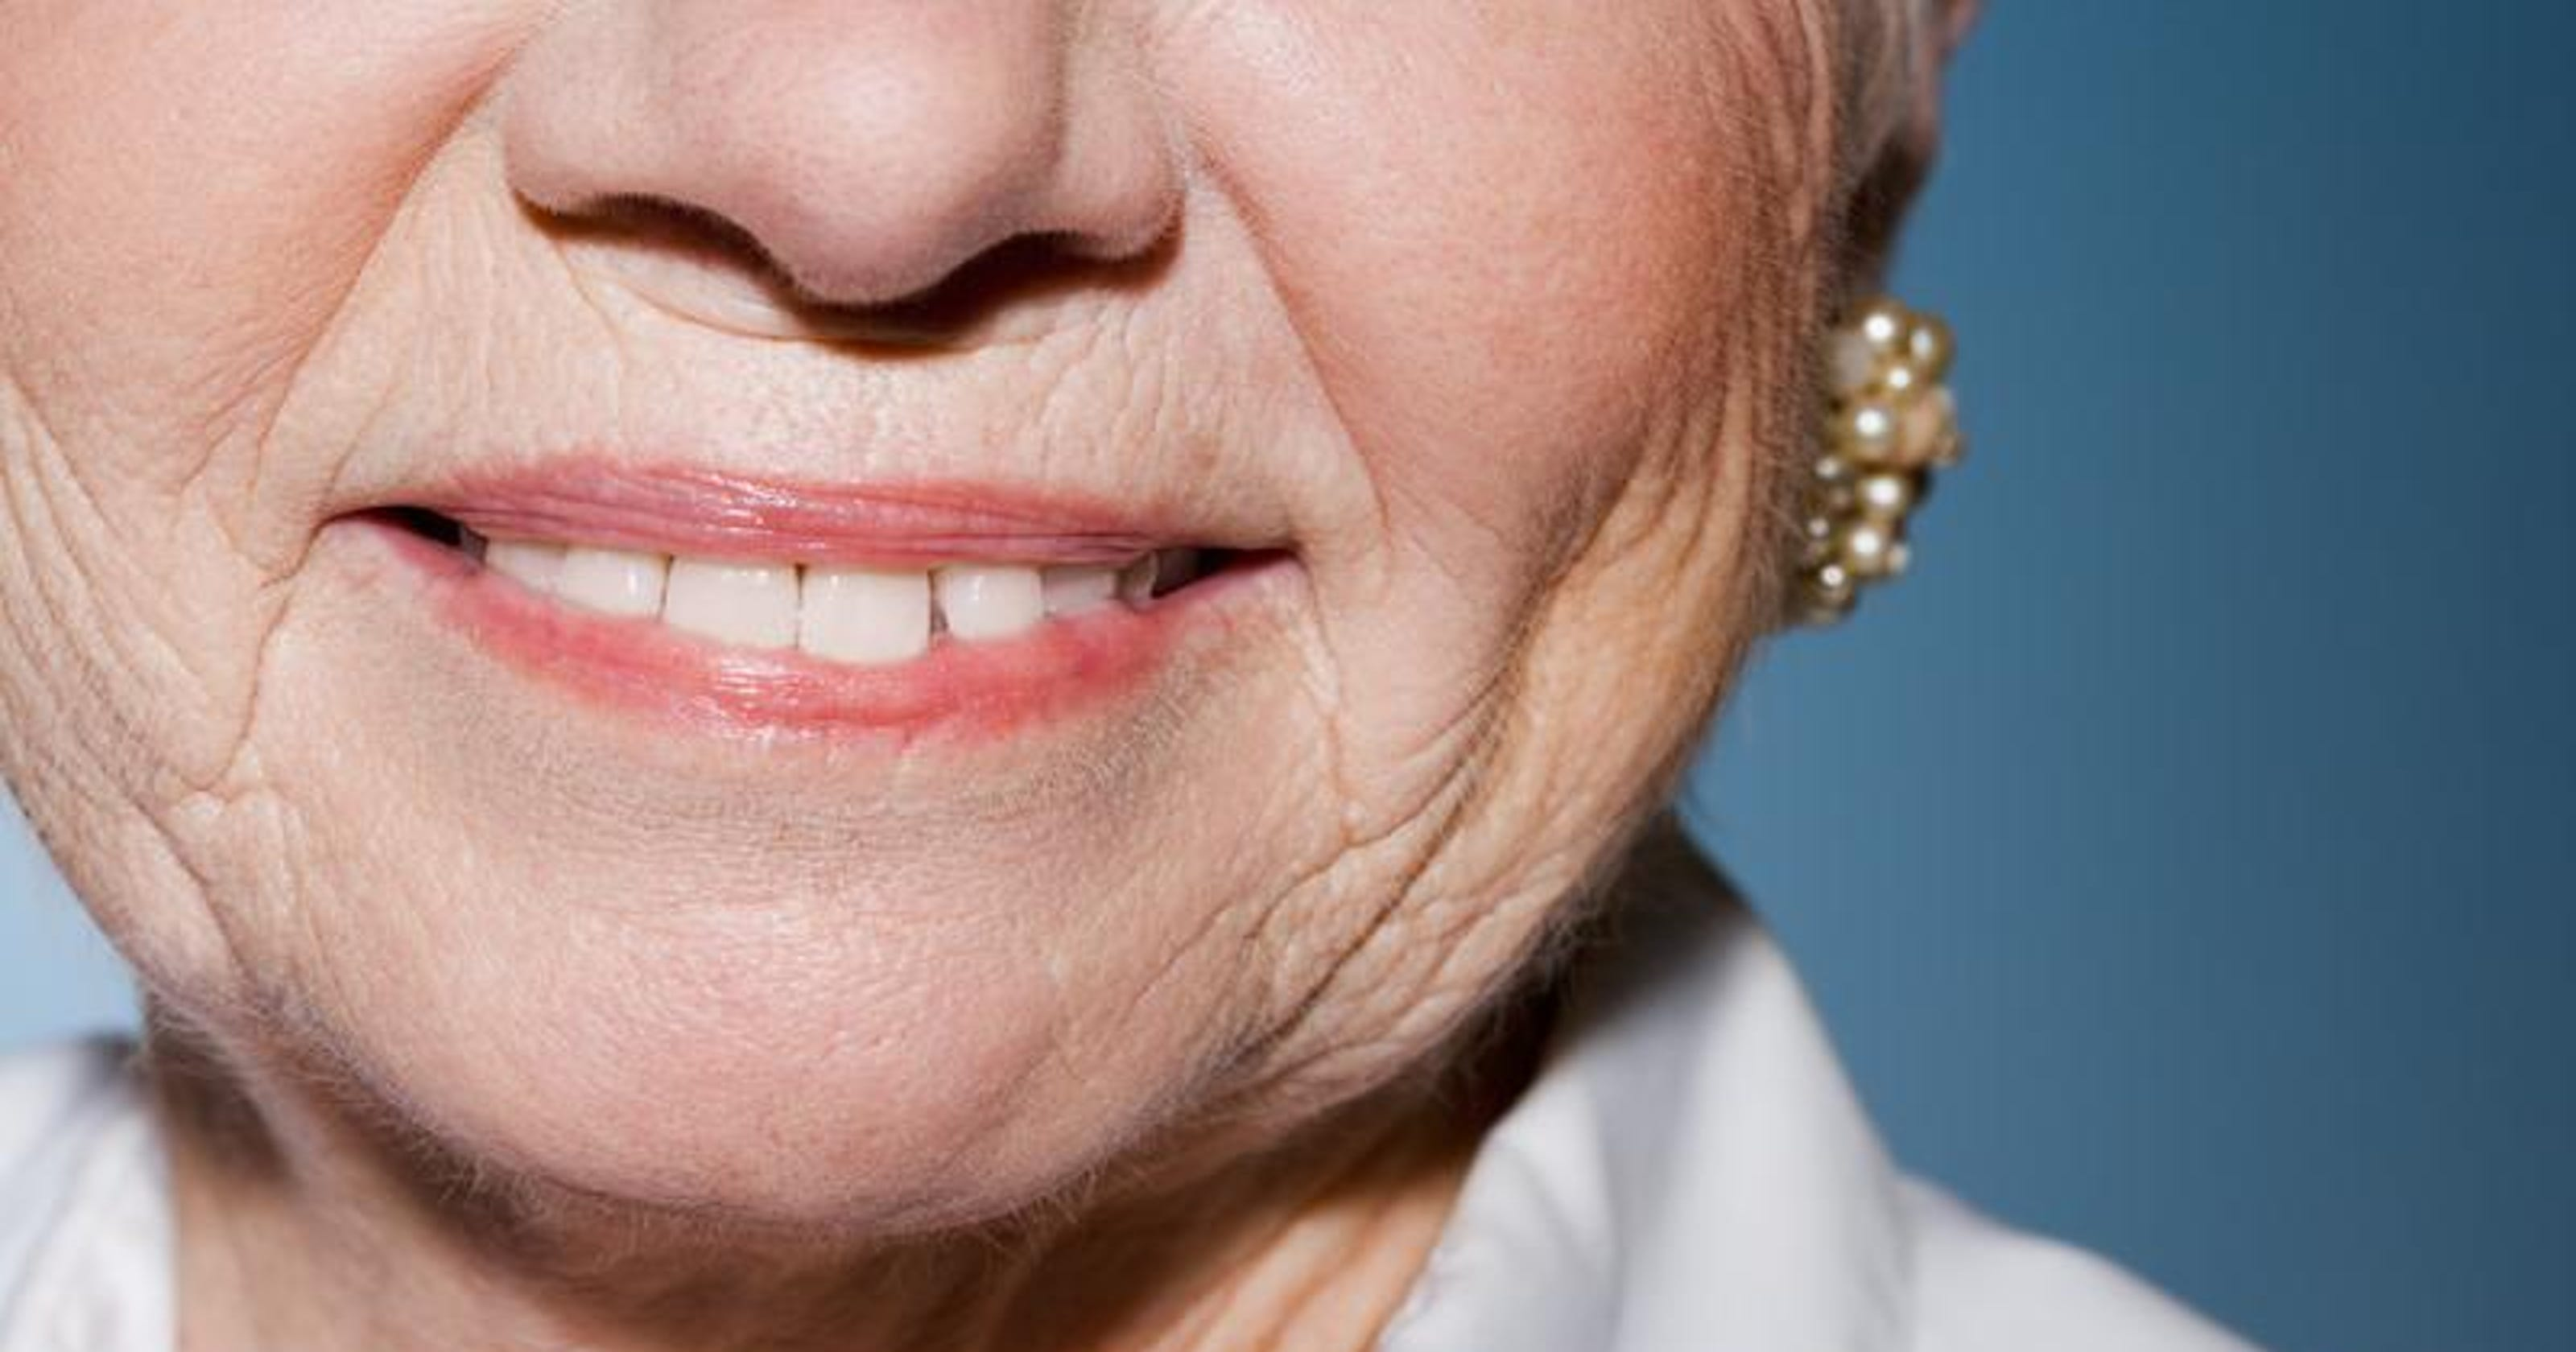 Beauty Tips: Your facial wrinkles are dynamic or static